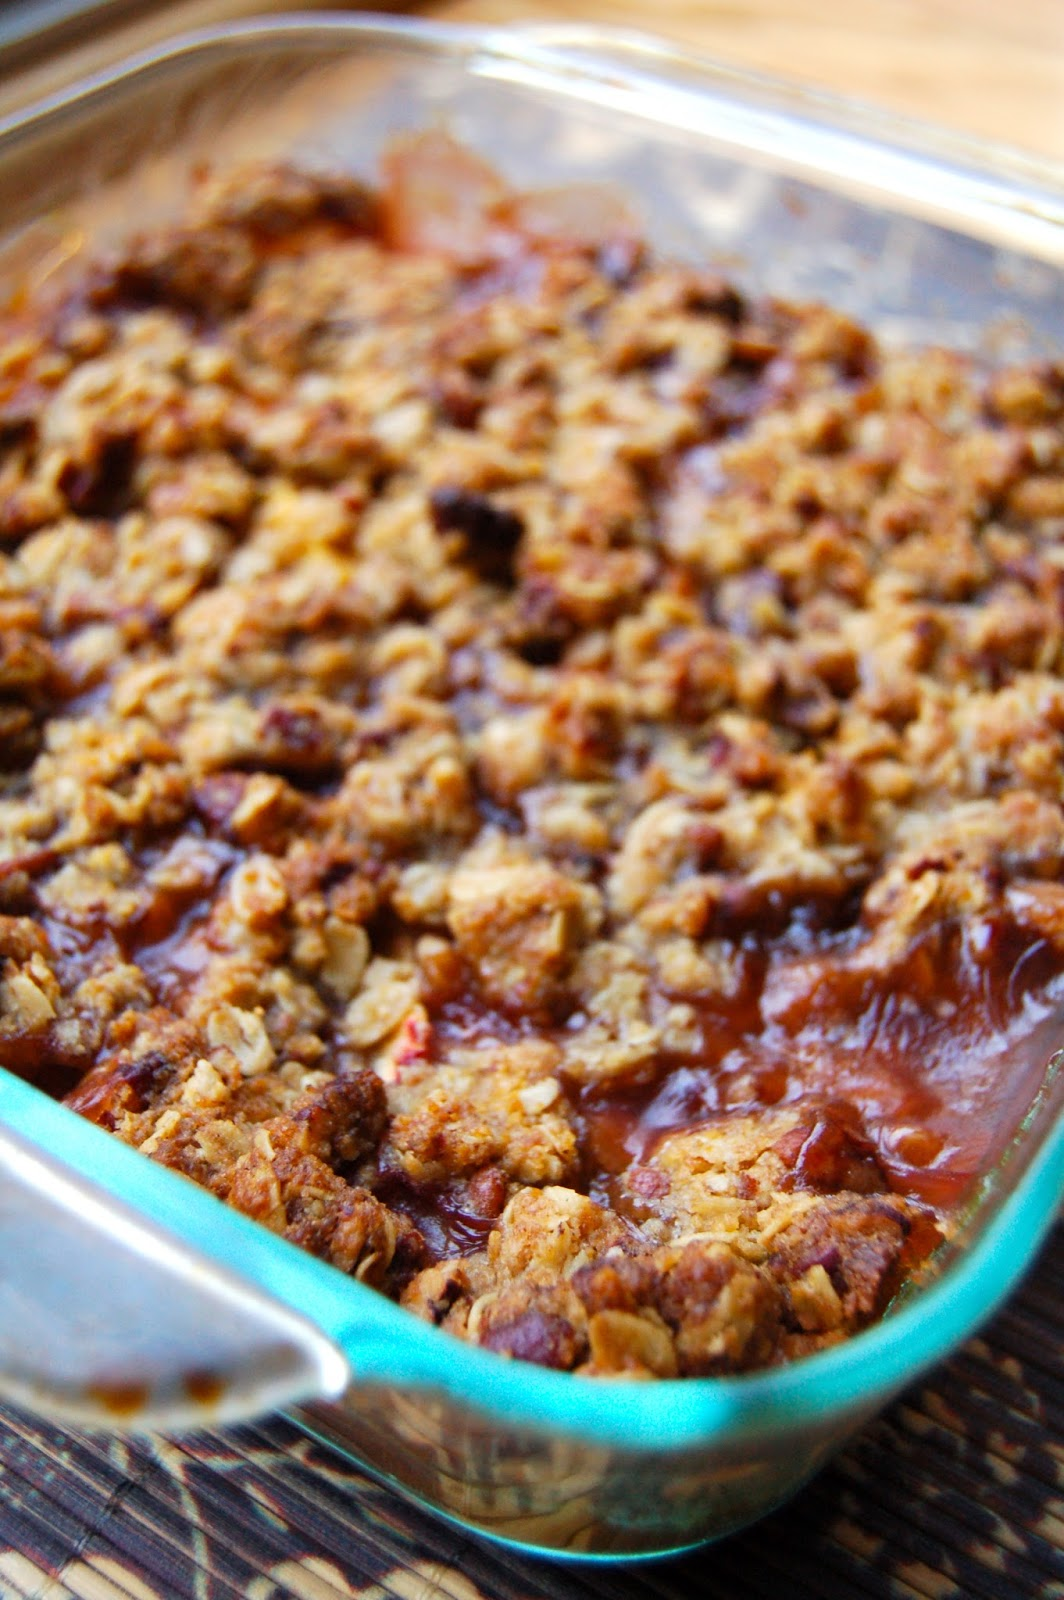 30/30 - #6 Peach Bourbon Crumble